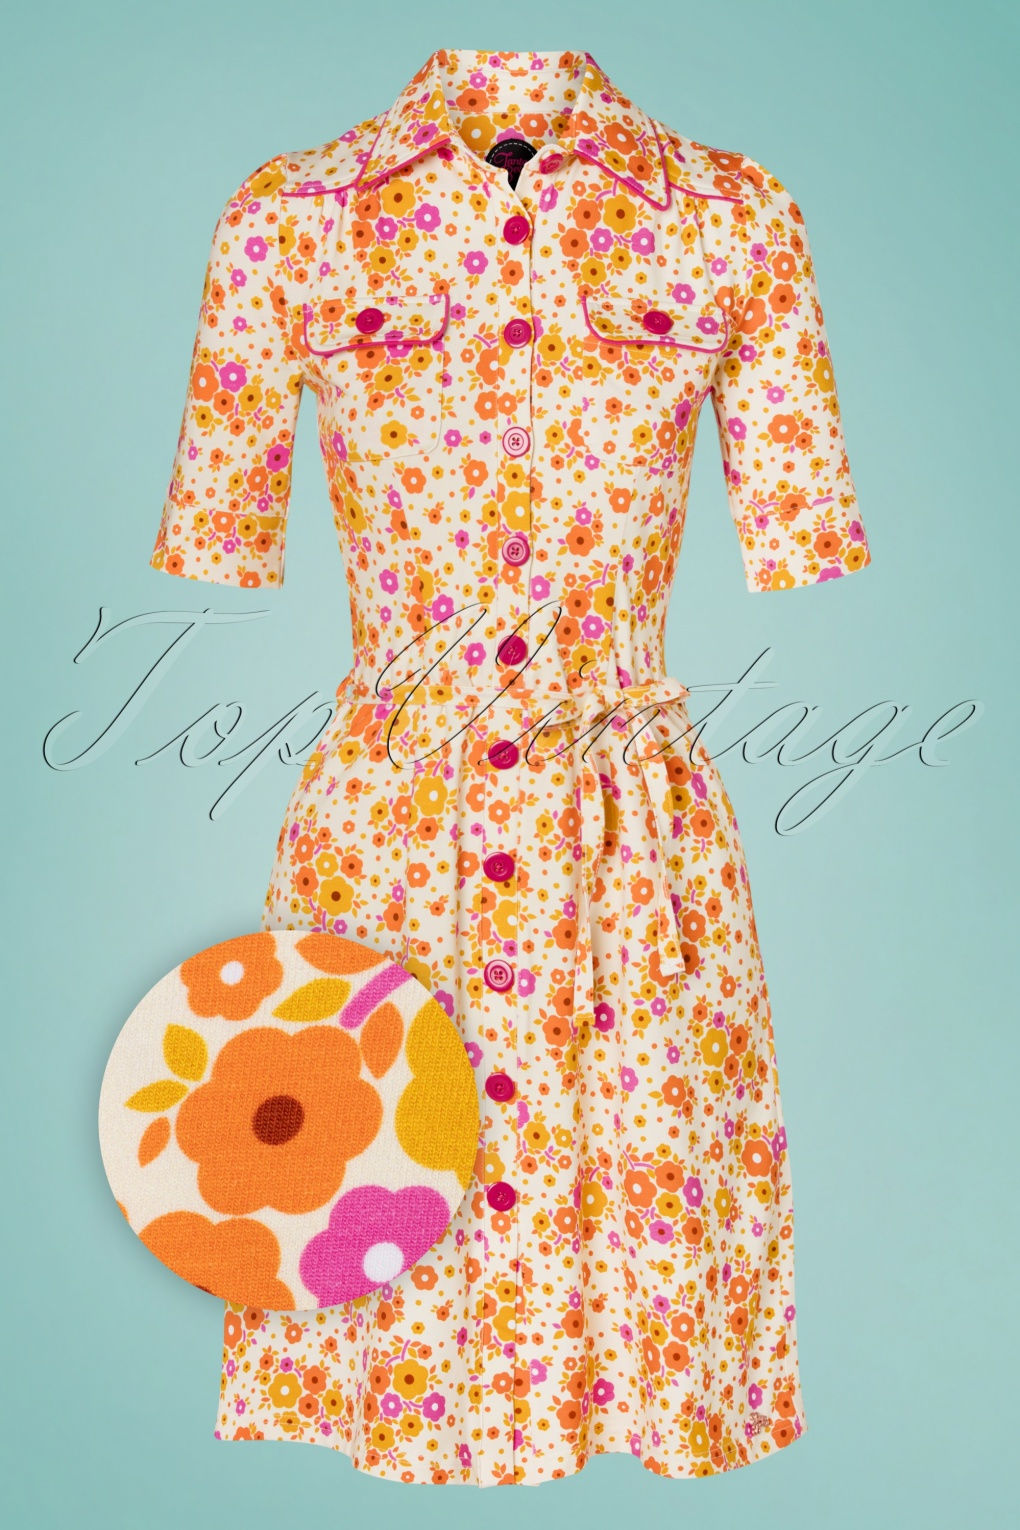 60s Dresses | 1960s Dresses Mod, Mini, Hippie 60s Betsy Fleurie Button Dress in Yellow £79.02 AT vintagedancer.com